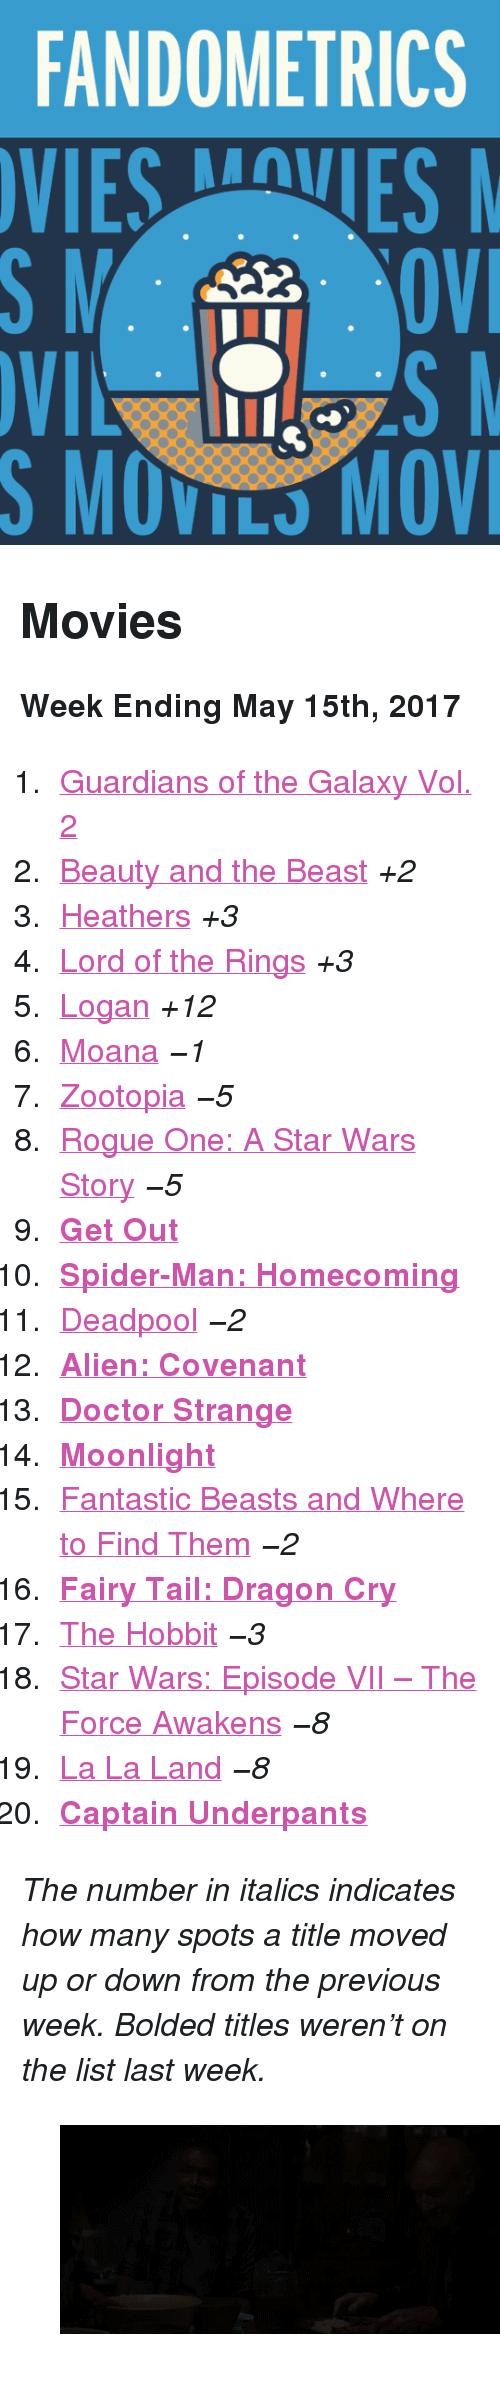 """Doctor, Gif, and Movies: FANDOMETRICS  VIESVES  S MOVILS MOV <h2>Movies</h2><p><b>Week Ending May 15th, 2017</b></p><ol><li><a href=""""http://tumblr.co/613289v02"""">Guardians of the Galaxy Vol. 2</a></li><li><a href=""""http://tumblr.co/613389v0N"""">Beauty and the Beast</a><i>+2</i></li><li><a href=""""http://tumblr.co/613489v04"""">Heathers</a><i>+3</i></li><li><a href=""""http://tumblr.co/613589v0f"""">Lord of the Rings</a><i>+3</i></li><li><a href=""""http://tumblr.co/613689v0A"""">Logan</a><i>+12</i></li><li><a href=""""http://tumblr.co/613789v07"""">Moana</a><i>−1</i></li><li><a href=""""http://tumblr.co/613889v0C"""">Zootopia</a><i>−5</i></li><li><a href=""""http://tumblr.co/613989v0h"""">Rogue One: A Star Wars Story</a><i>−5</i></li><li><a href=""""http://tumblr.co/613089vF6""""><b>Get Out</b></a></li><li><a href=""""http://tumblr.co/613189vFB""""><b>Spider-Man: Homecoming</b></a></li><li><a href=""""http://tumblr.co/613289vF8"""">Deadpool</a><i>−2</i></li><li><a href=""""http://tumblr.co/613489vFE""""><b>Alien: Covenant</b></a></li><li><a href=""""http://tumblr.co/613689vFG""""><b>Doctor Strange</b></a></li><li><a href=""""http://tumblr.co/613789vFH""""><b>Moonlight</b></a></li><li><a href=""""http://tumblr.co/613889vFy"""">Fantastic Beasts and Where to Find Them</a><i>−2</i></li><li><a href=""""http://tumblr.co/613989vFJ""""><b>Fairy Tail: Dragon Cry</b></a></li><li><a href=""""http://tumblr.co/613089vFK"""">The Hobbit</a><i>−3</i></li><li><a href=""""http://tumblr.co/613189vFz"""">Star Wars: Episode VII – The Force Awakens</a><i>−8</i></li><li><a href=""""http://tumblr.co/613289vFM"""">La La Land</a><i>−8</i></li><li><a href=""""http://tumblr.co/613389vF3""""><b>Captain Underpants</b></a></li></ol><p><i>The number in italics indicates how many spots a title moved up or down from the previous week. Bolded titles weren't on the list last week.</i></p><figure data-orig-width=""""500"""" data-orig-height=""""281"""" data-tumblr-attribution=""""anothermoviepage:QWI0XY9VYV_i6k8kQFps0g:Z3vPOi2JDw20P"""" class=""""tmblr-full""""><img src=""""https://78.media.tumblr.com/f52206111283a23e0613767d335c5fb6/tum"""